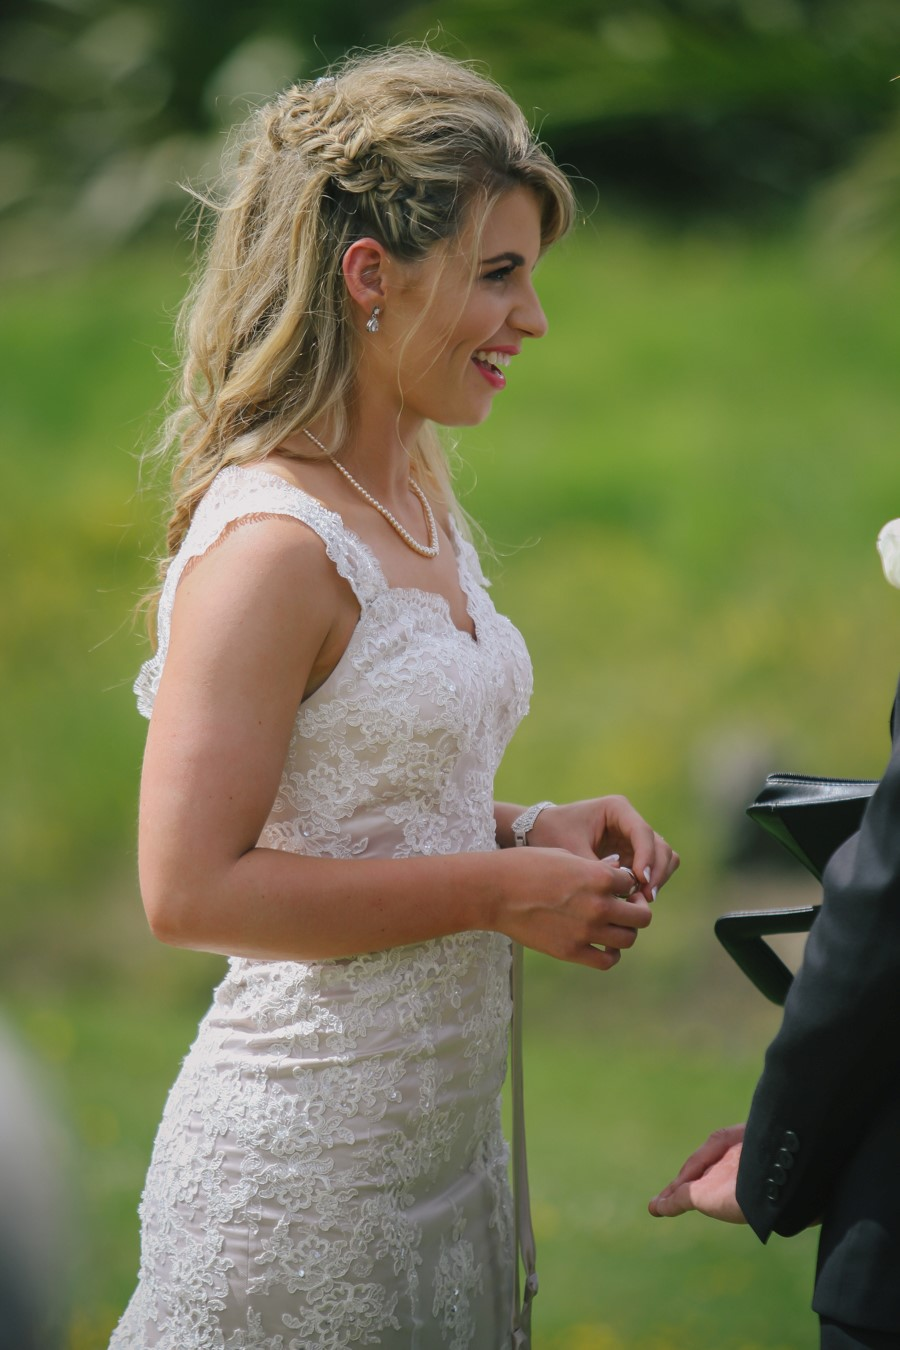 silverdale_wedding_nz_photographer-72